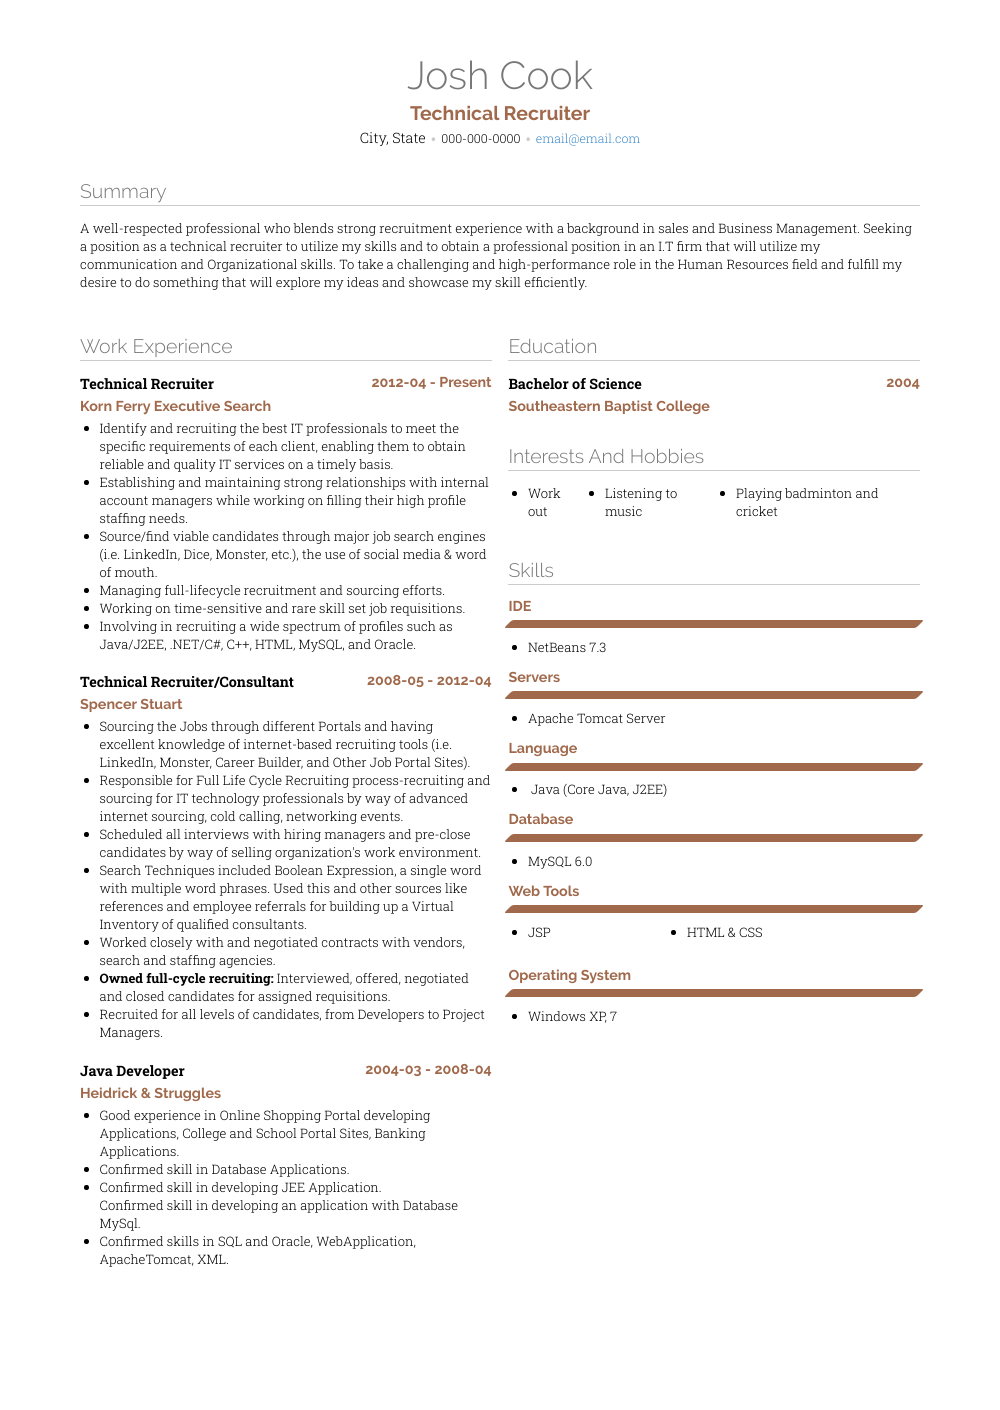 Technical Recruiter Resume Sample